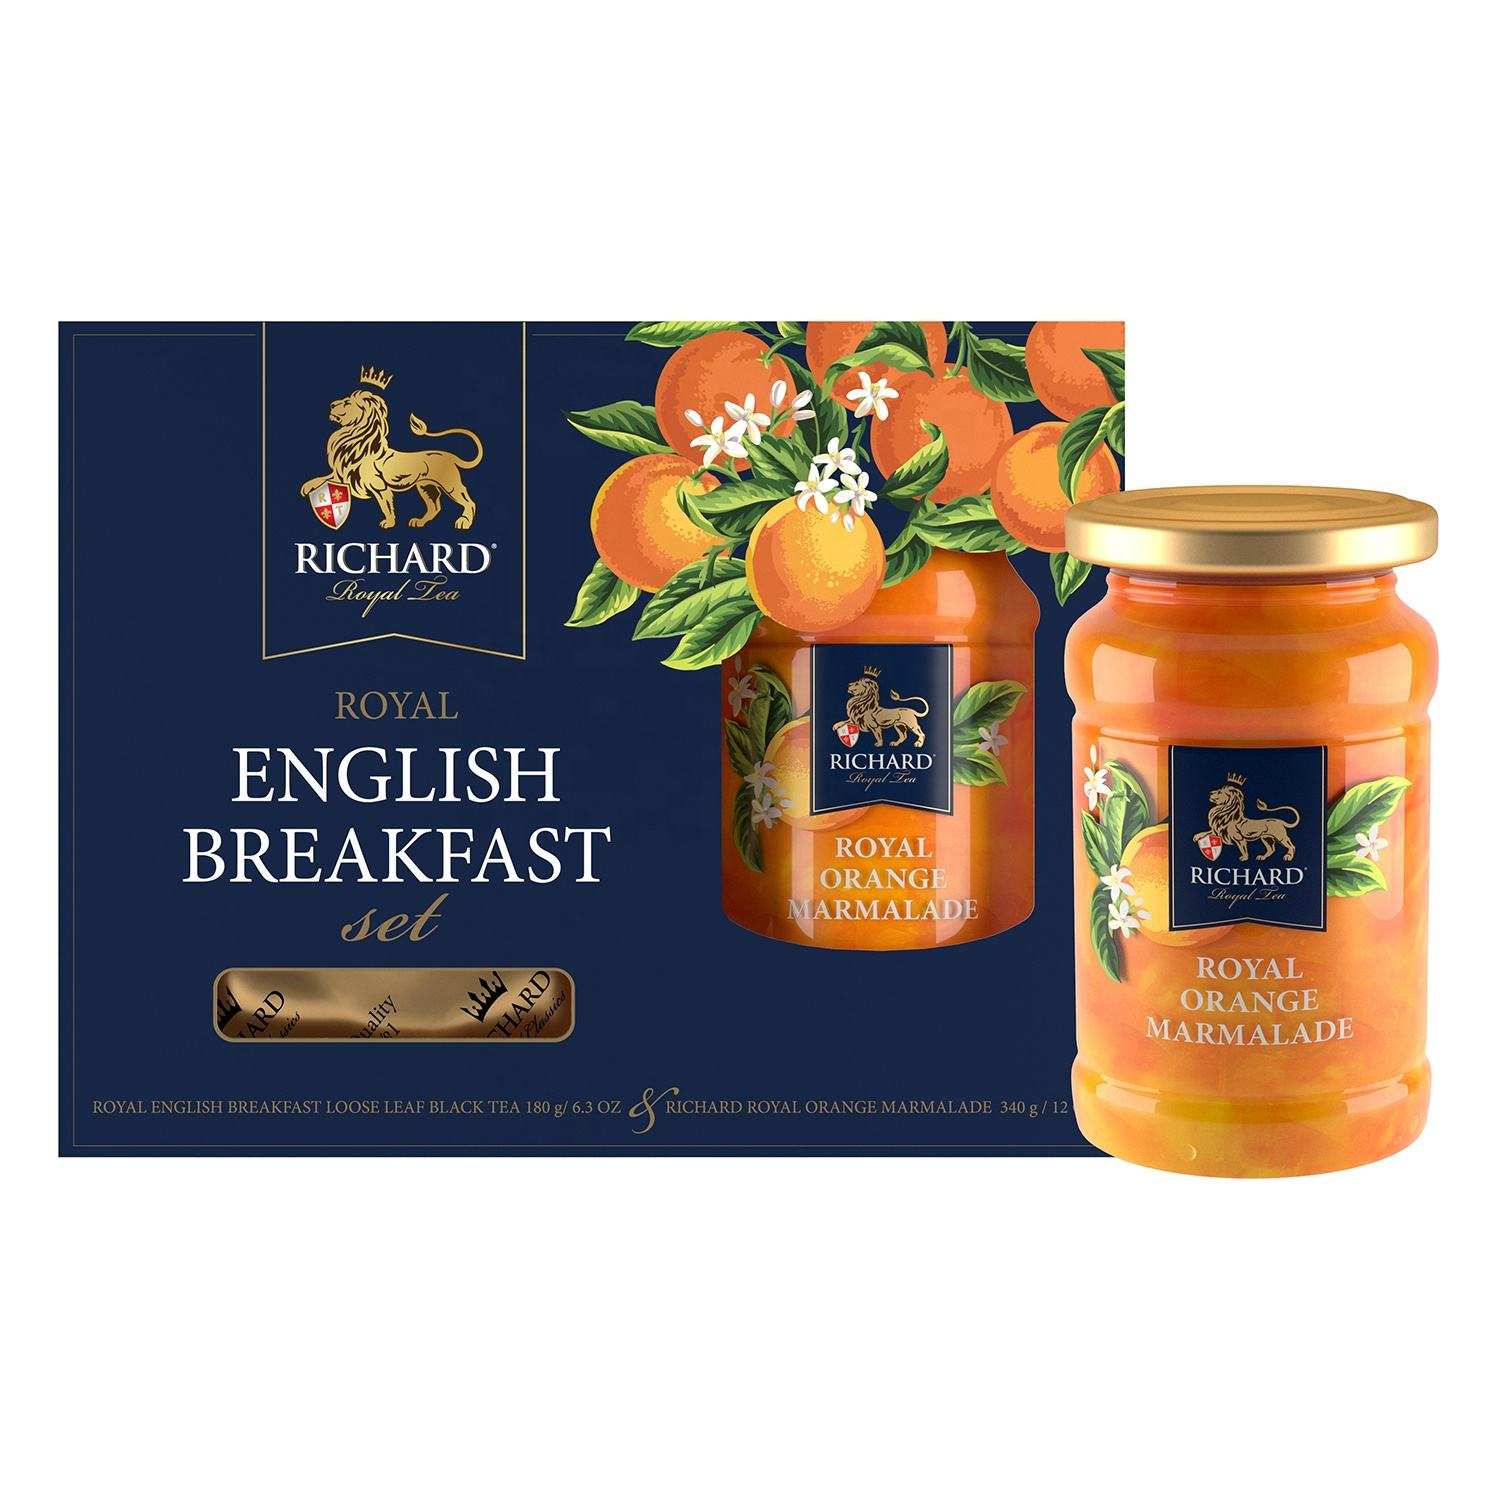 Royal English Breakfast Set - Gift that Makes You Feel Like a real British King (Classic Black Tea Blend with Orange Marmalade)